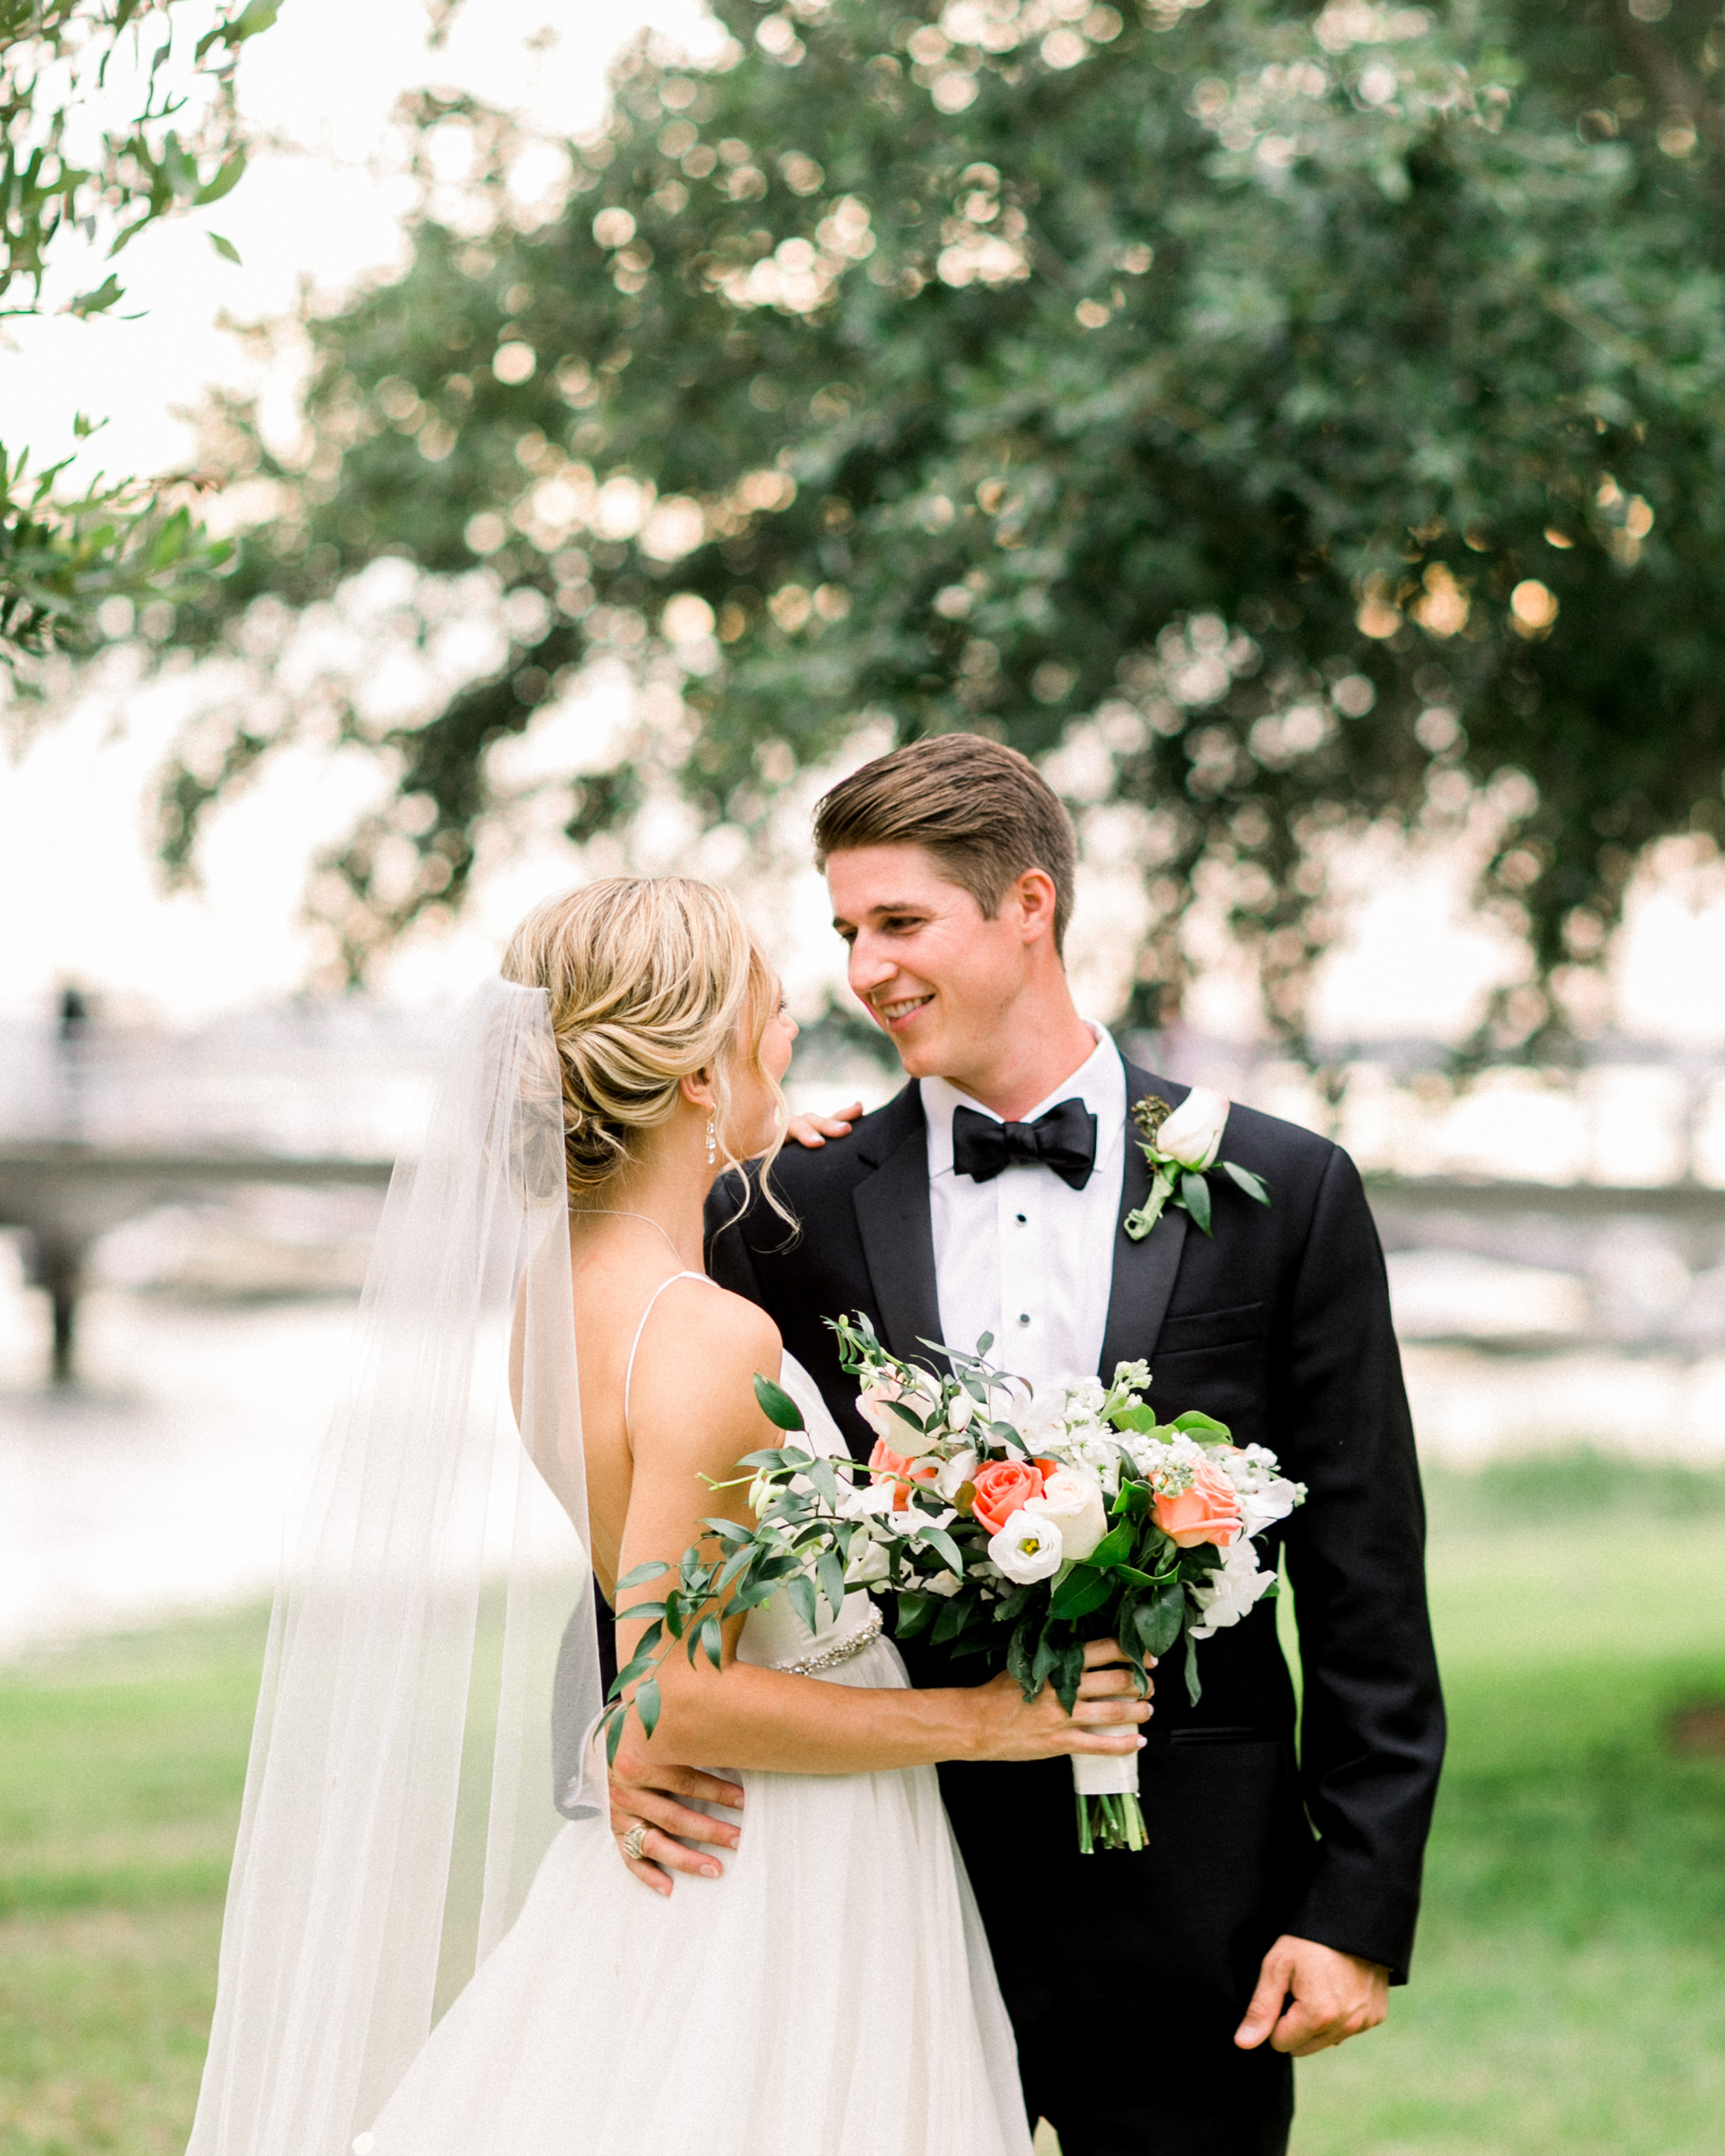 savannah wedding photographer katherine ives photography-1467.JPG